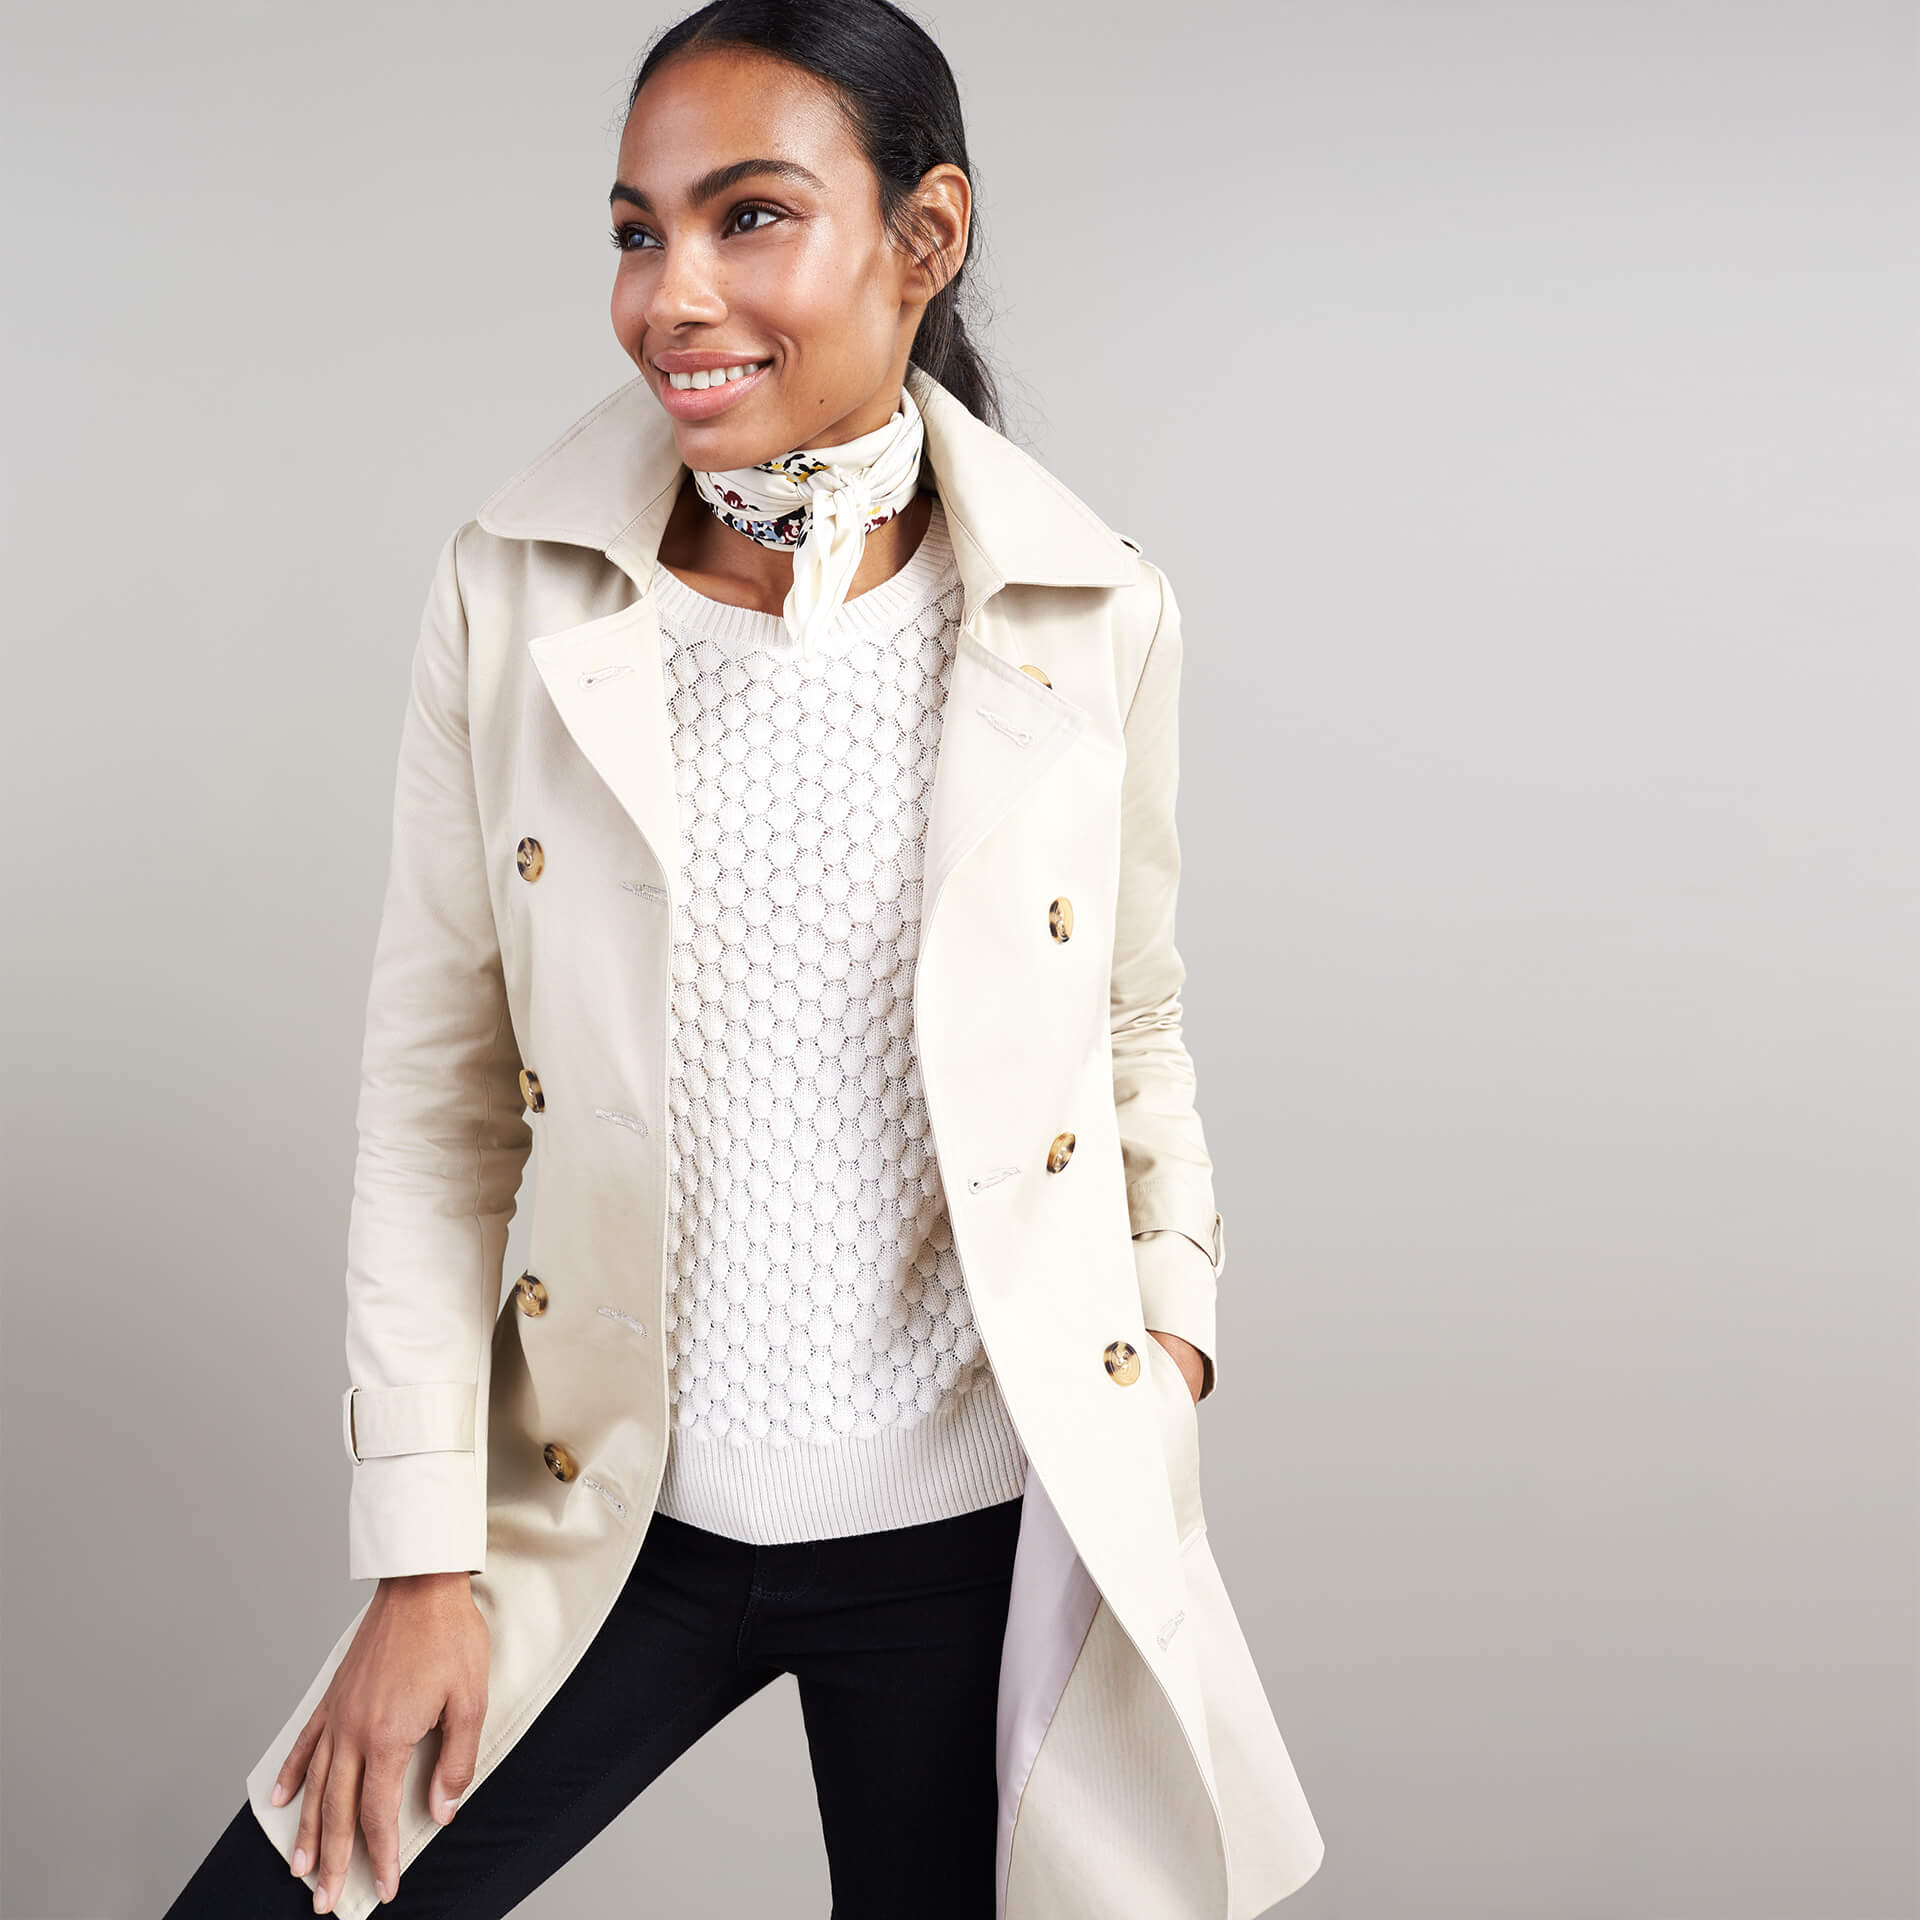 How to Style Trench Coat